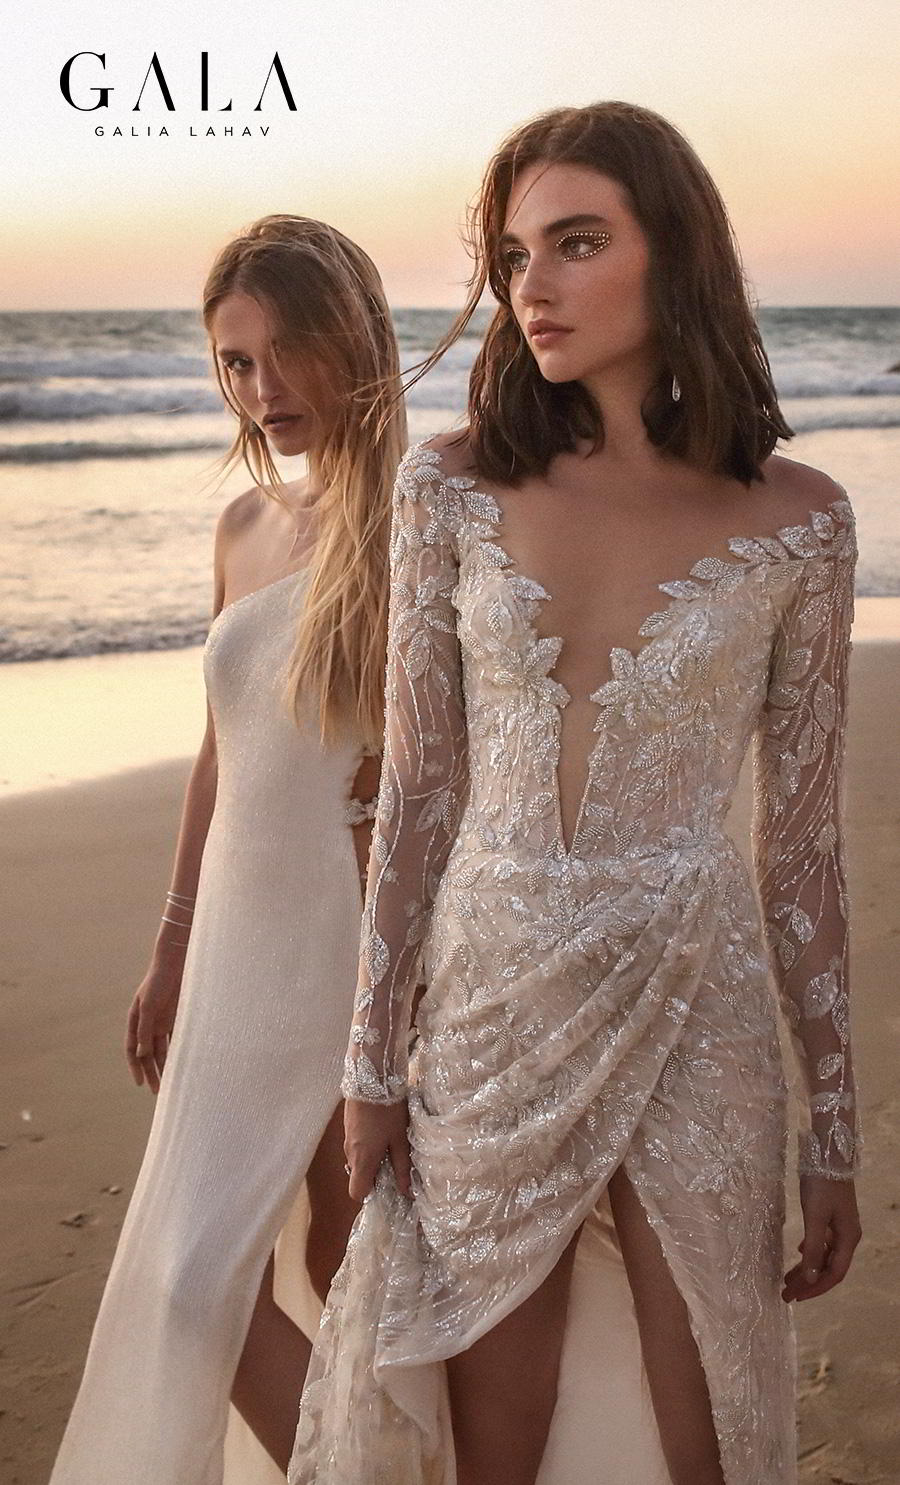 galia lahav fall 2020 gala no 9 bridal gorgeous beautiful wedding gowns dresses and collection